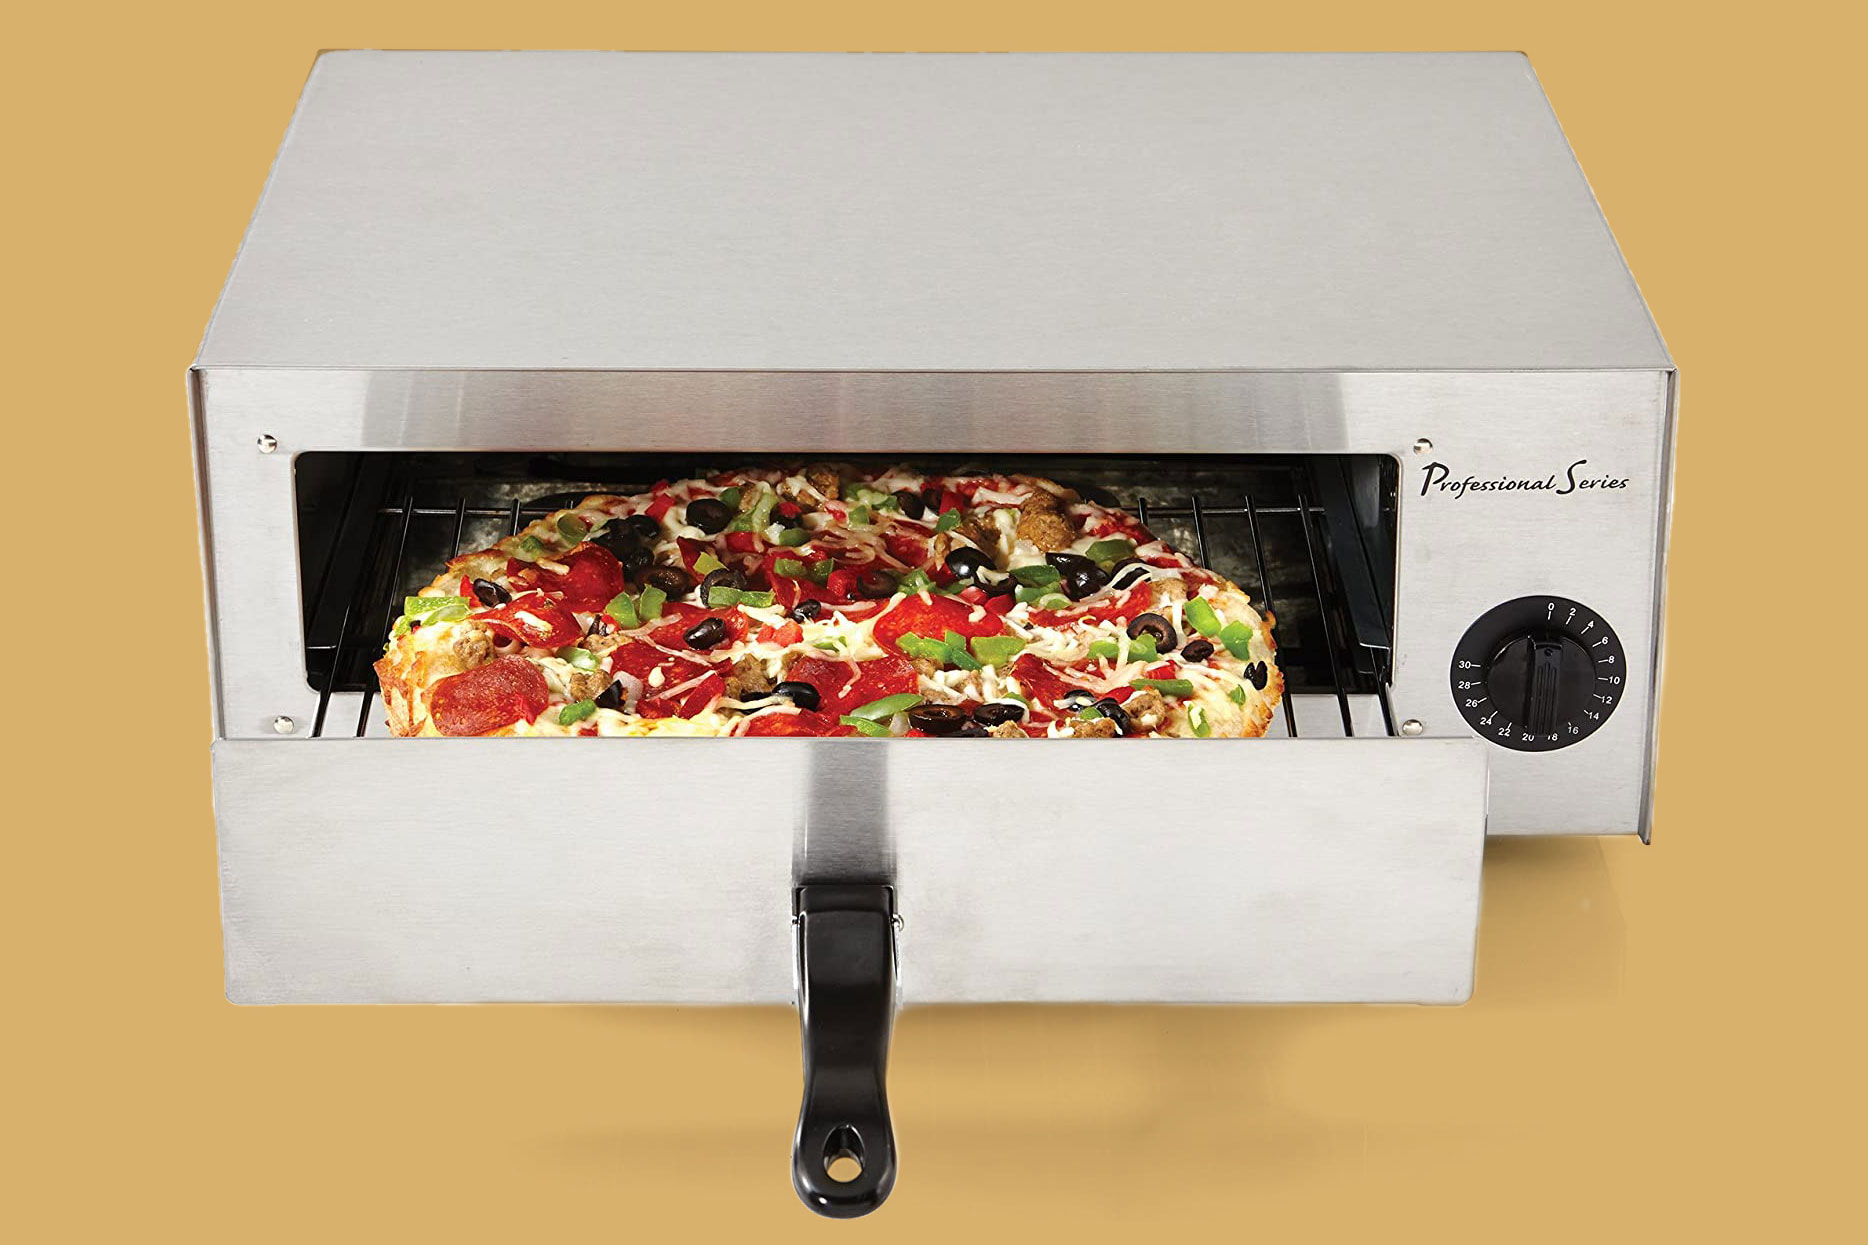 Professional Series Pizza Oven Baker